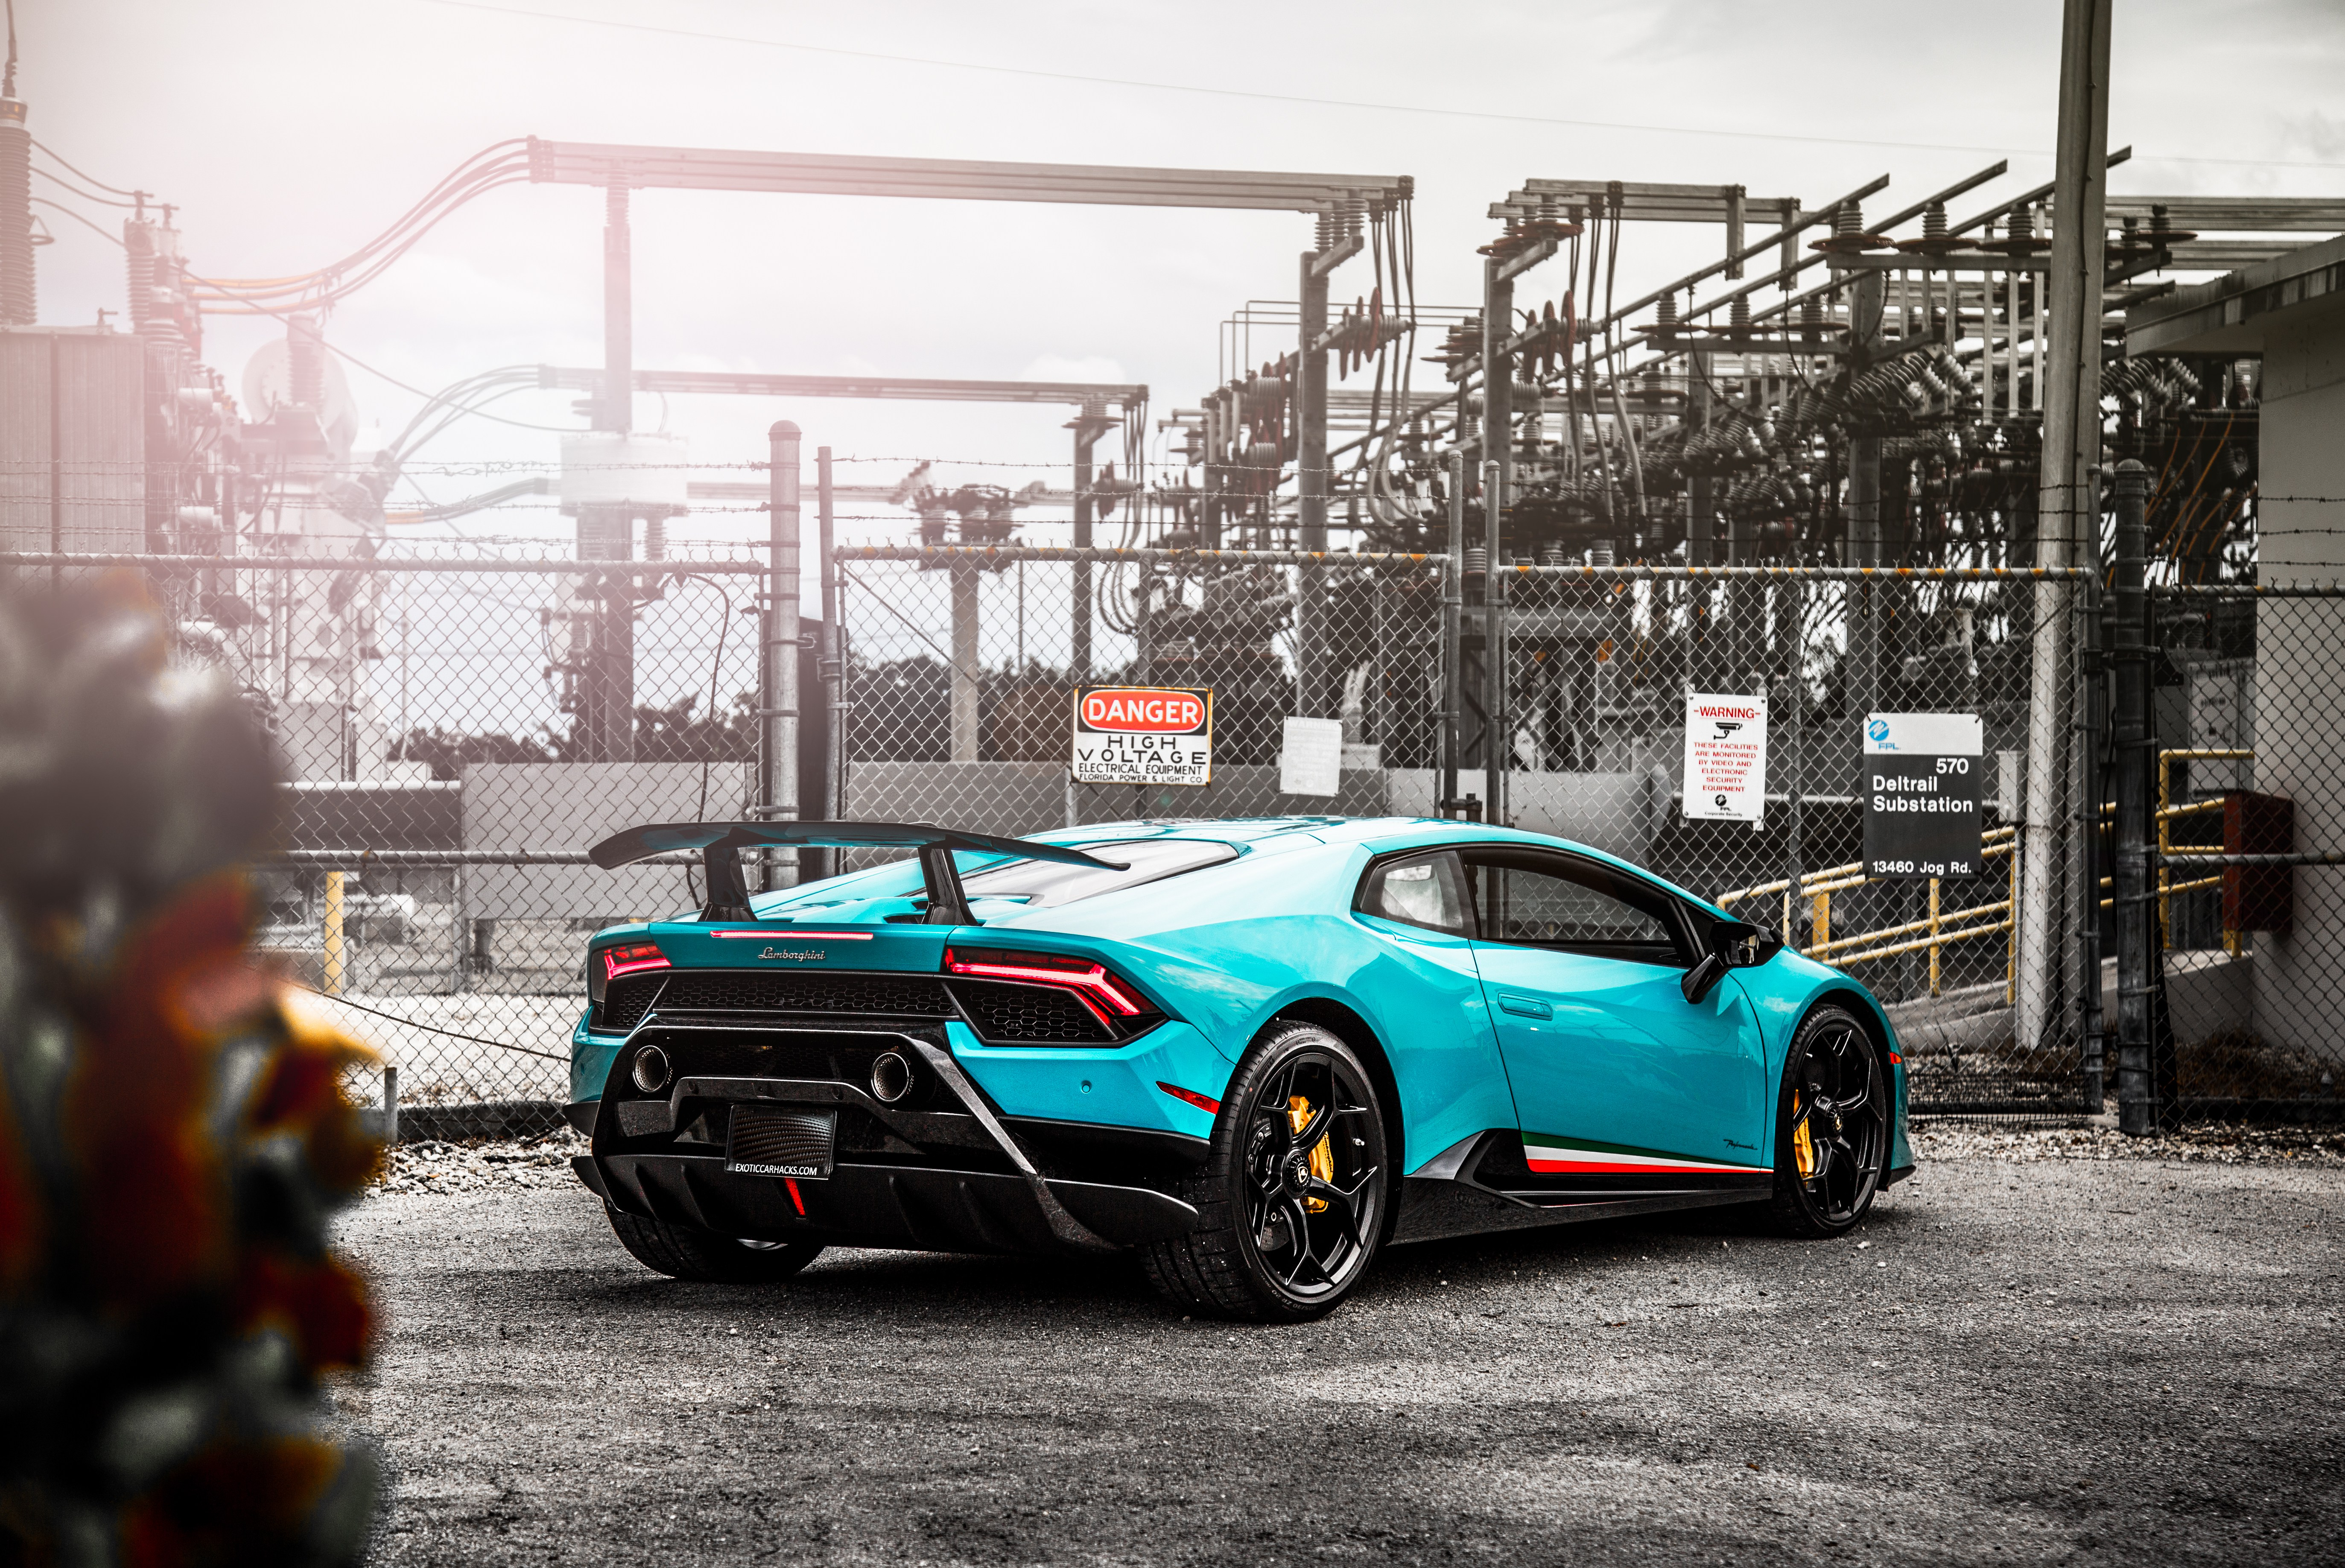 Lamborghini Huracan Performante Rear 5k, HD Cars, 4k